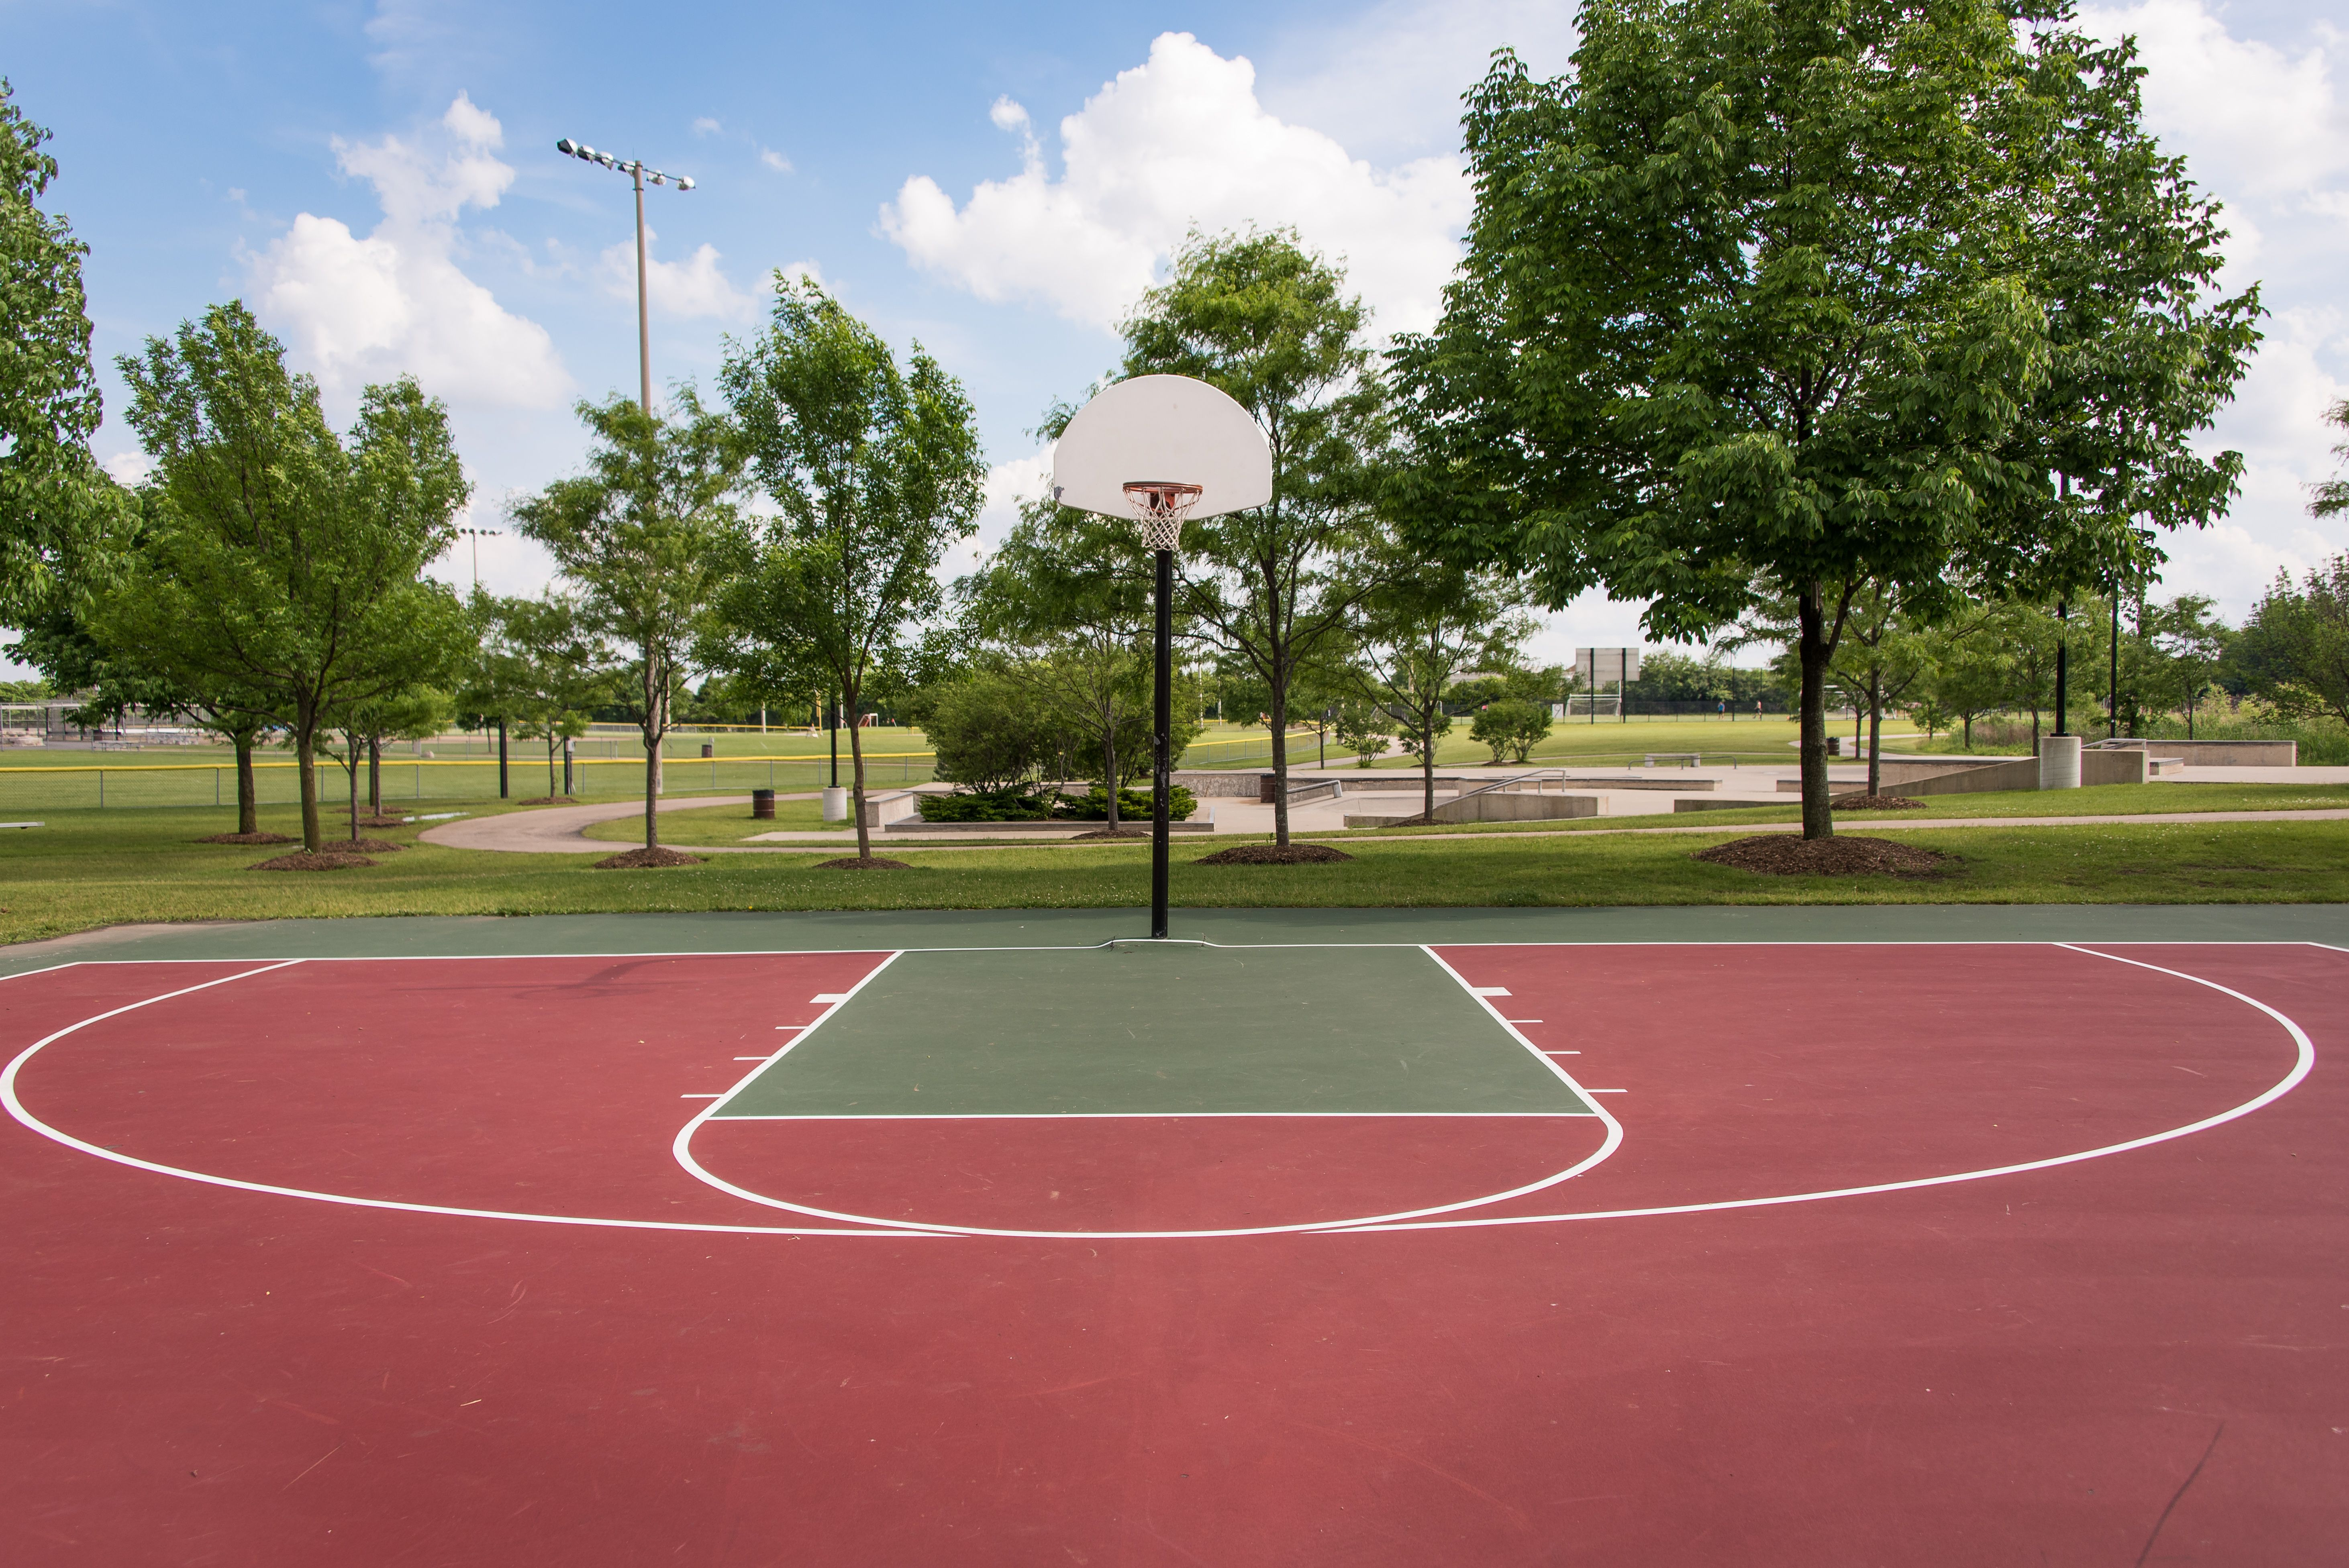 Olympic Park Basketball Court Basketball Pictures Basketball Park Scenery Background